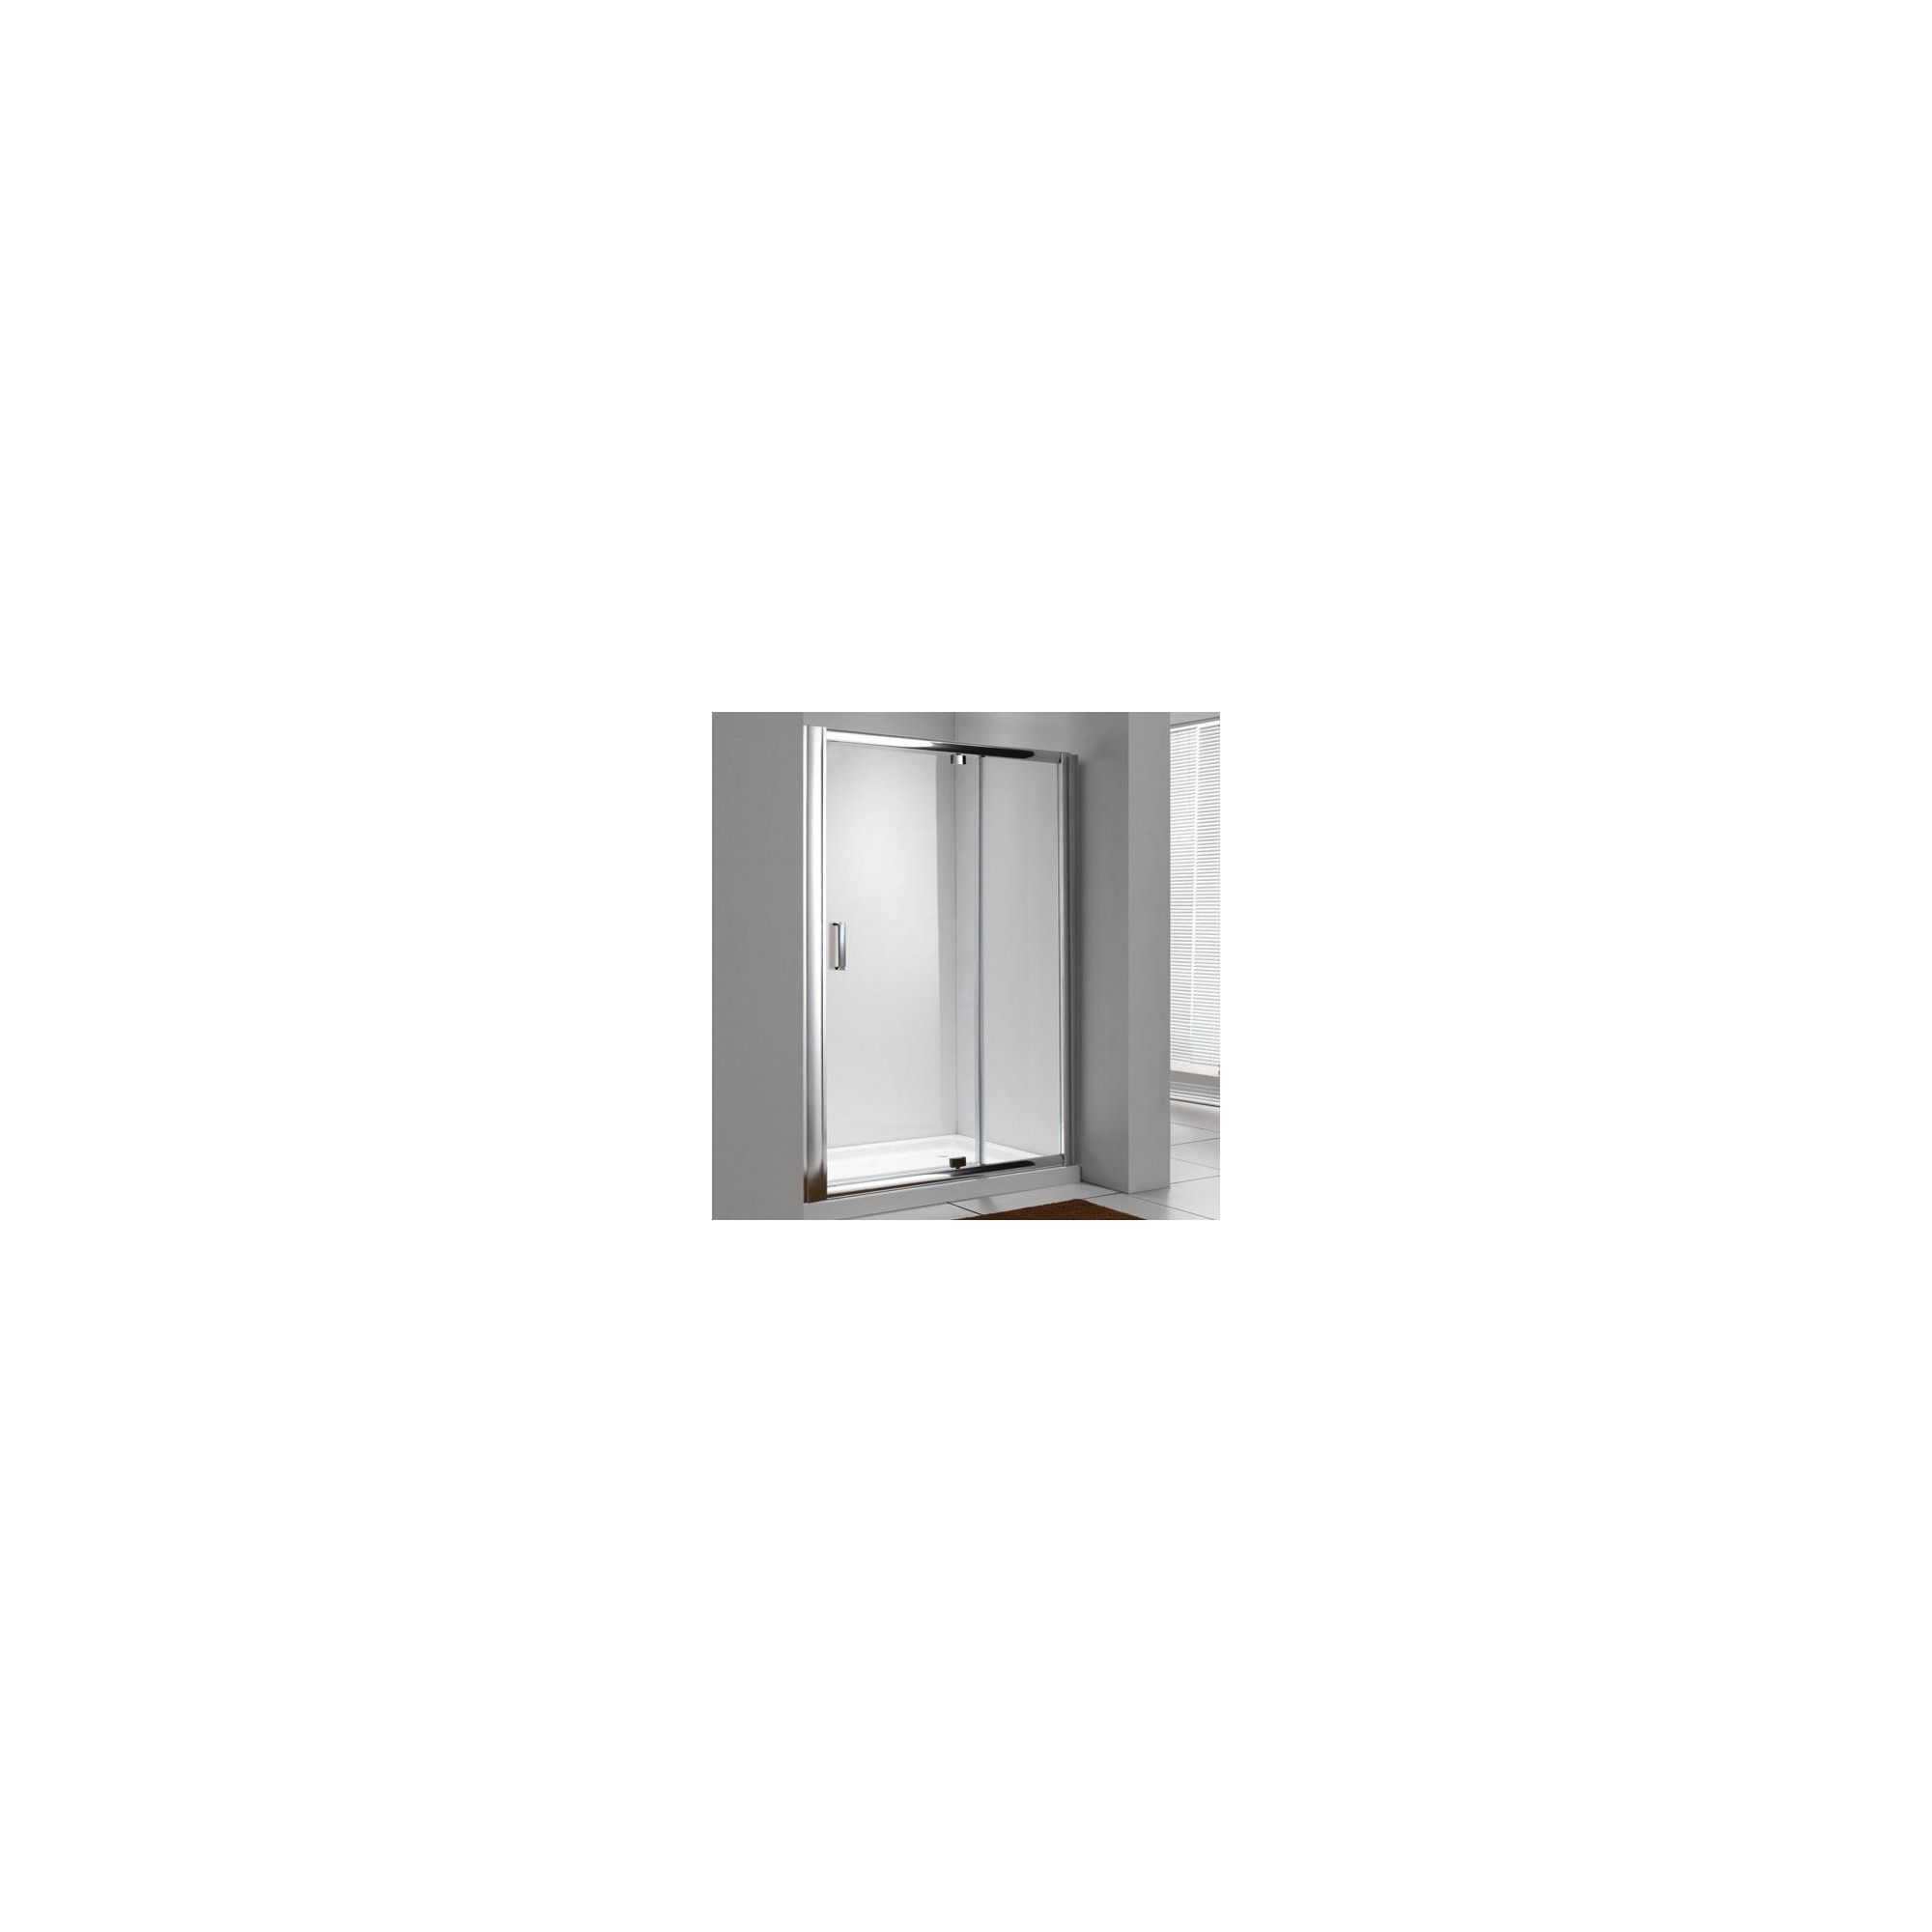 Duchy Style Pivot Door Shower Enclosure, 700mm x 700mm, 6mm Glass, Low Profile Tray at Tesco Direct